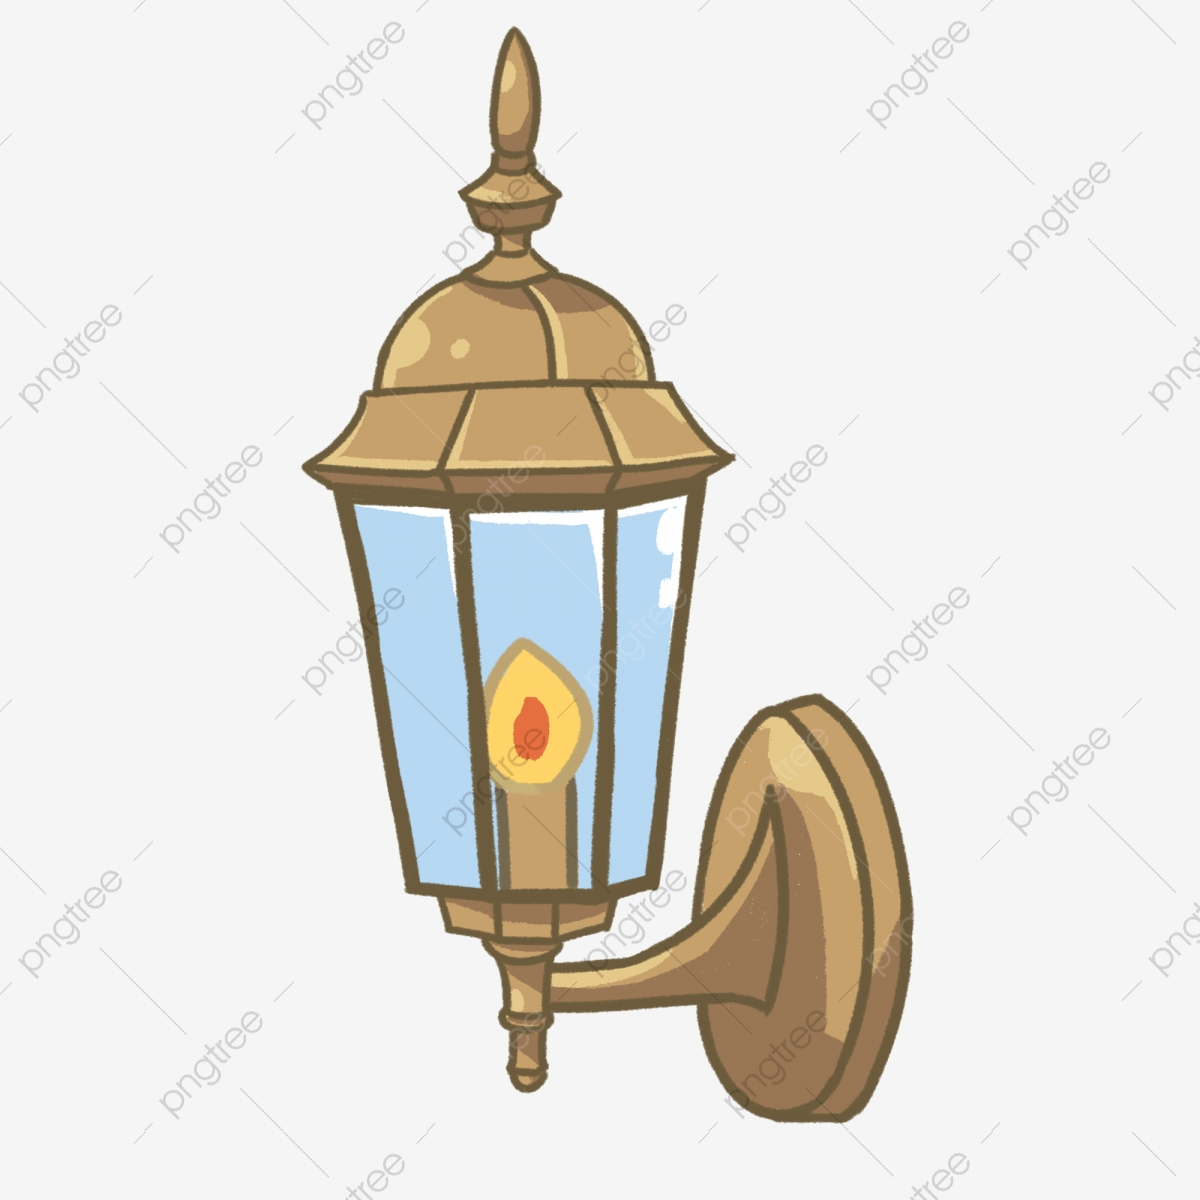 Wall Lamp Png Images Vector And Psd Files Free Download On Pngtree